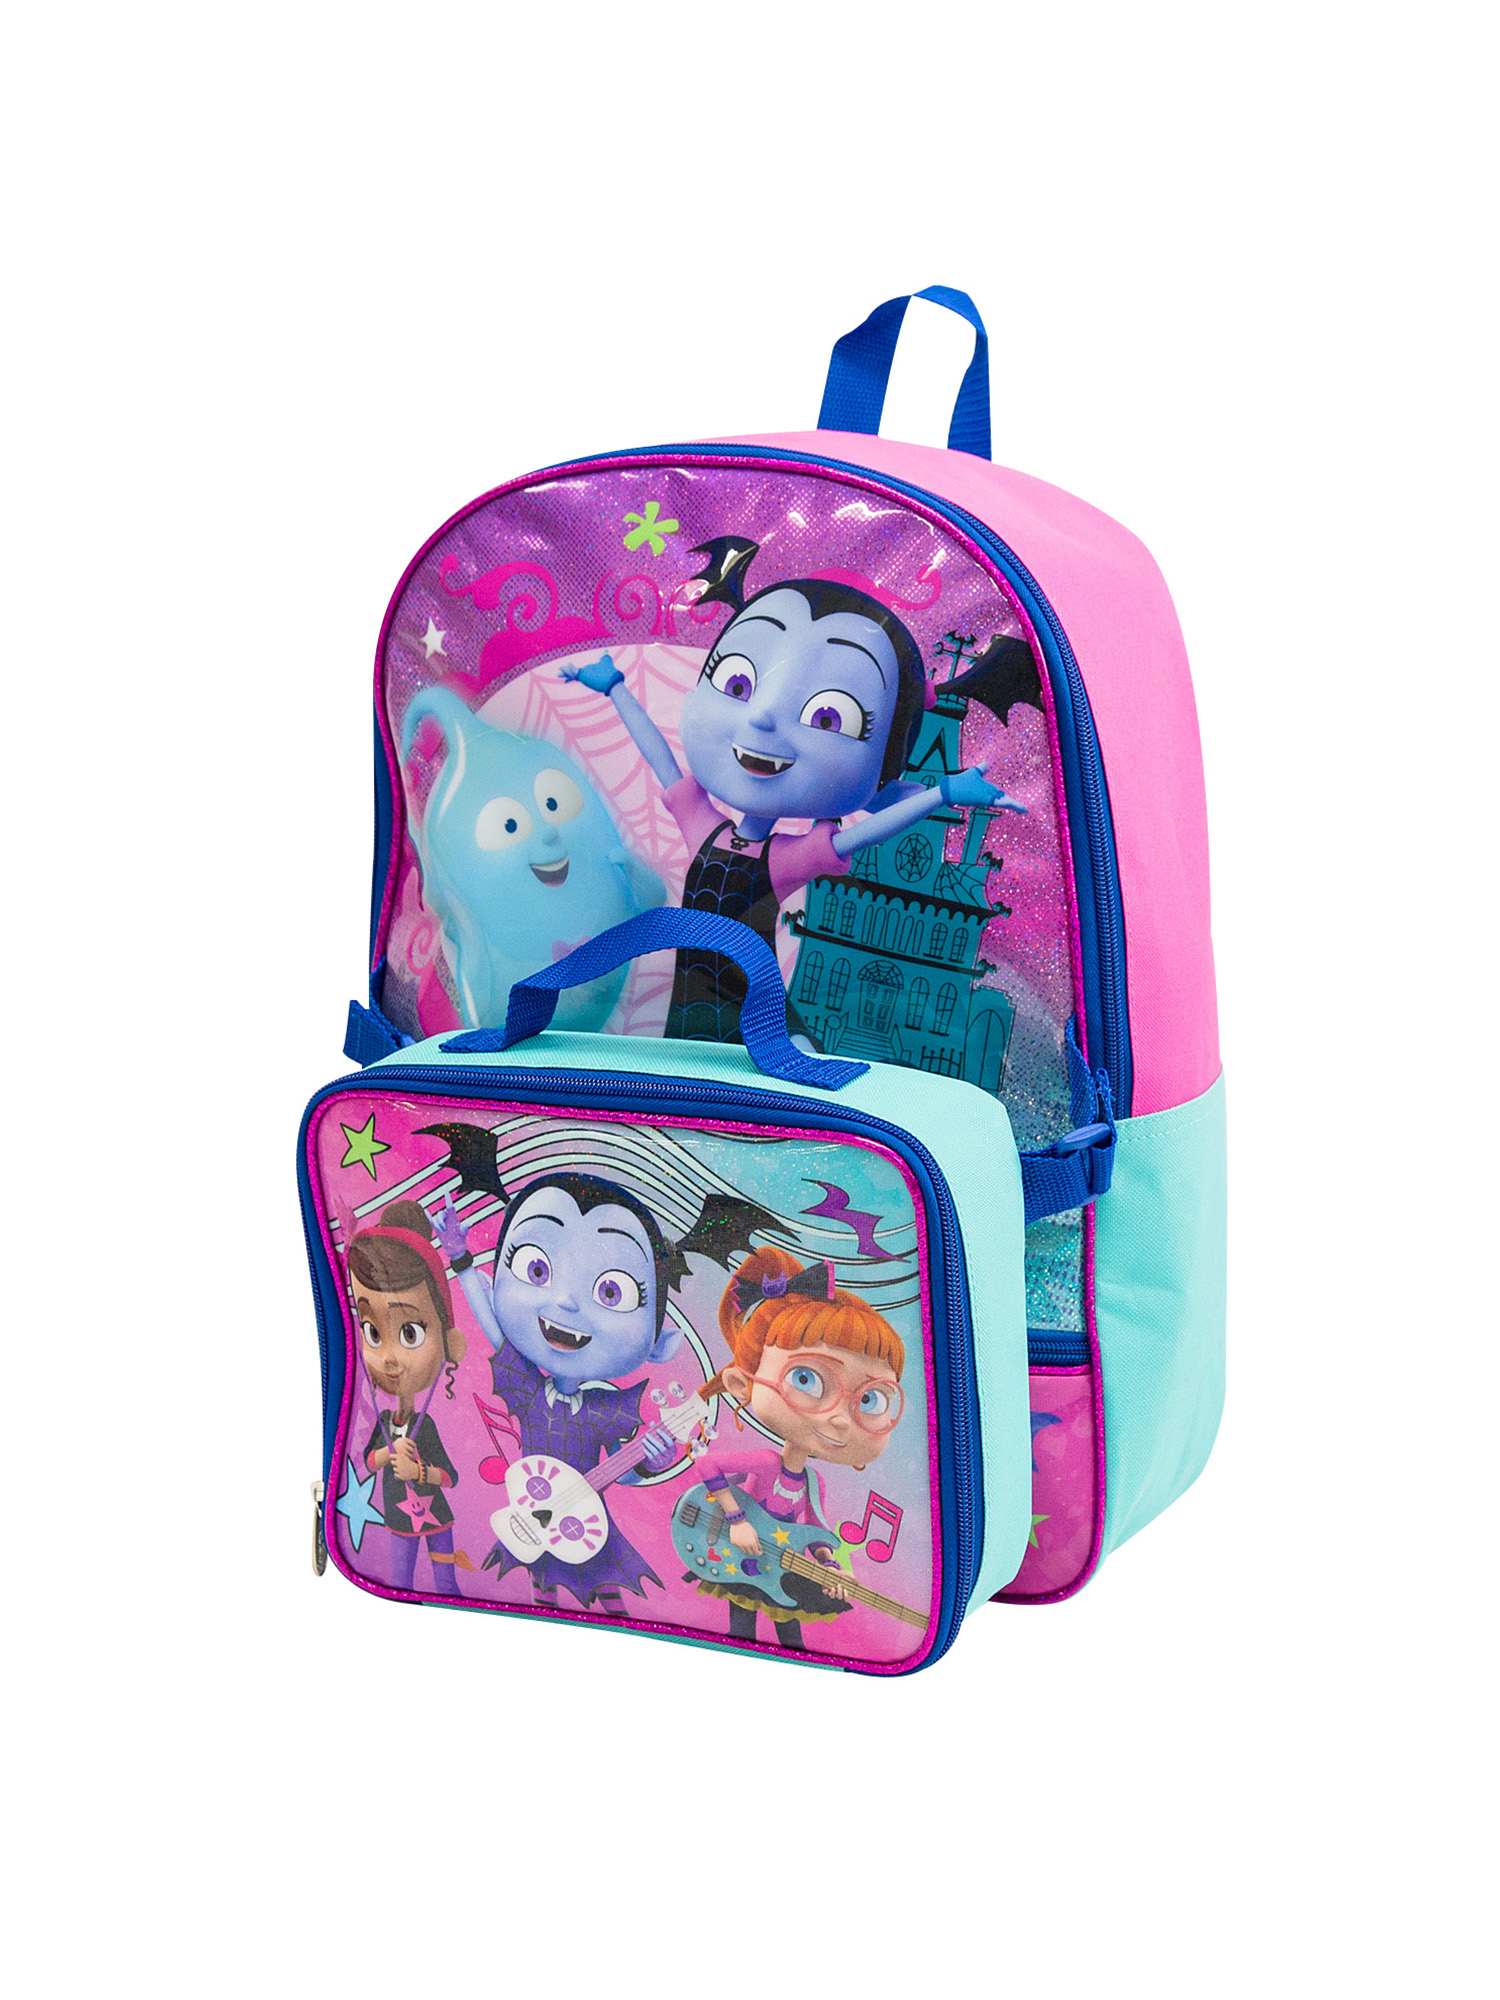 "Vampirina Backpack Set For Girls 8 Pc Deluxe 16/"" W Lunch Bag /& More BACKPACK"